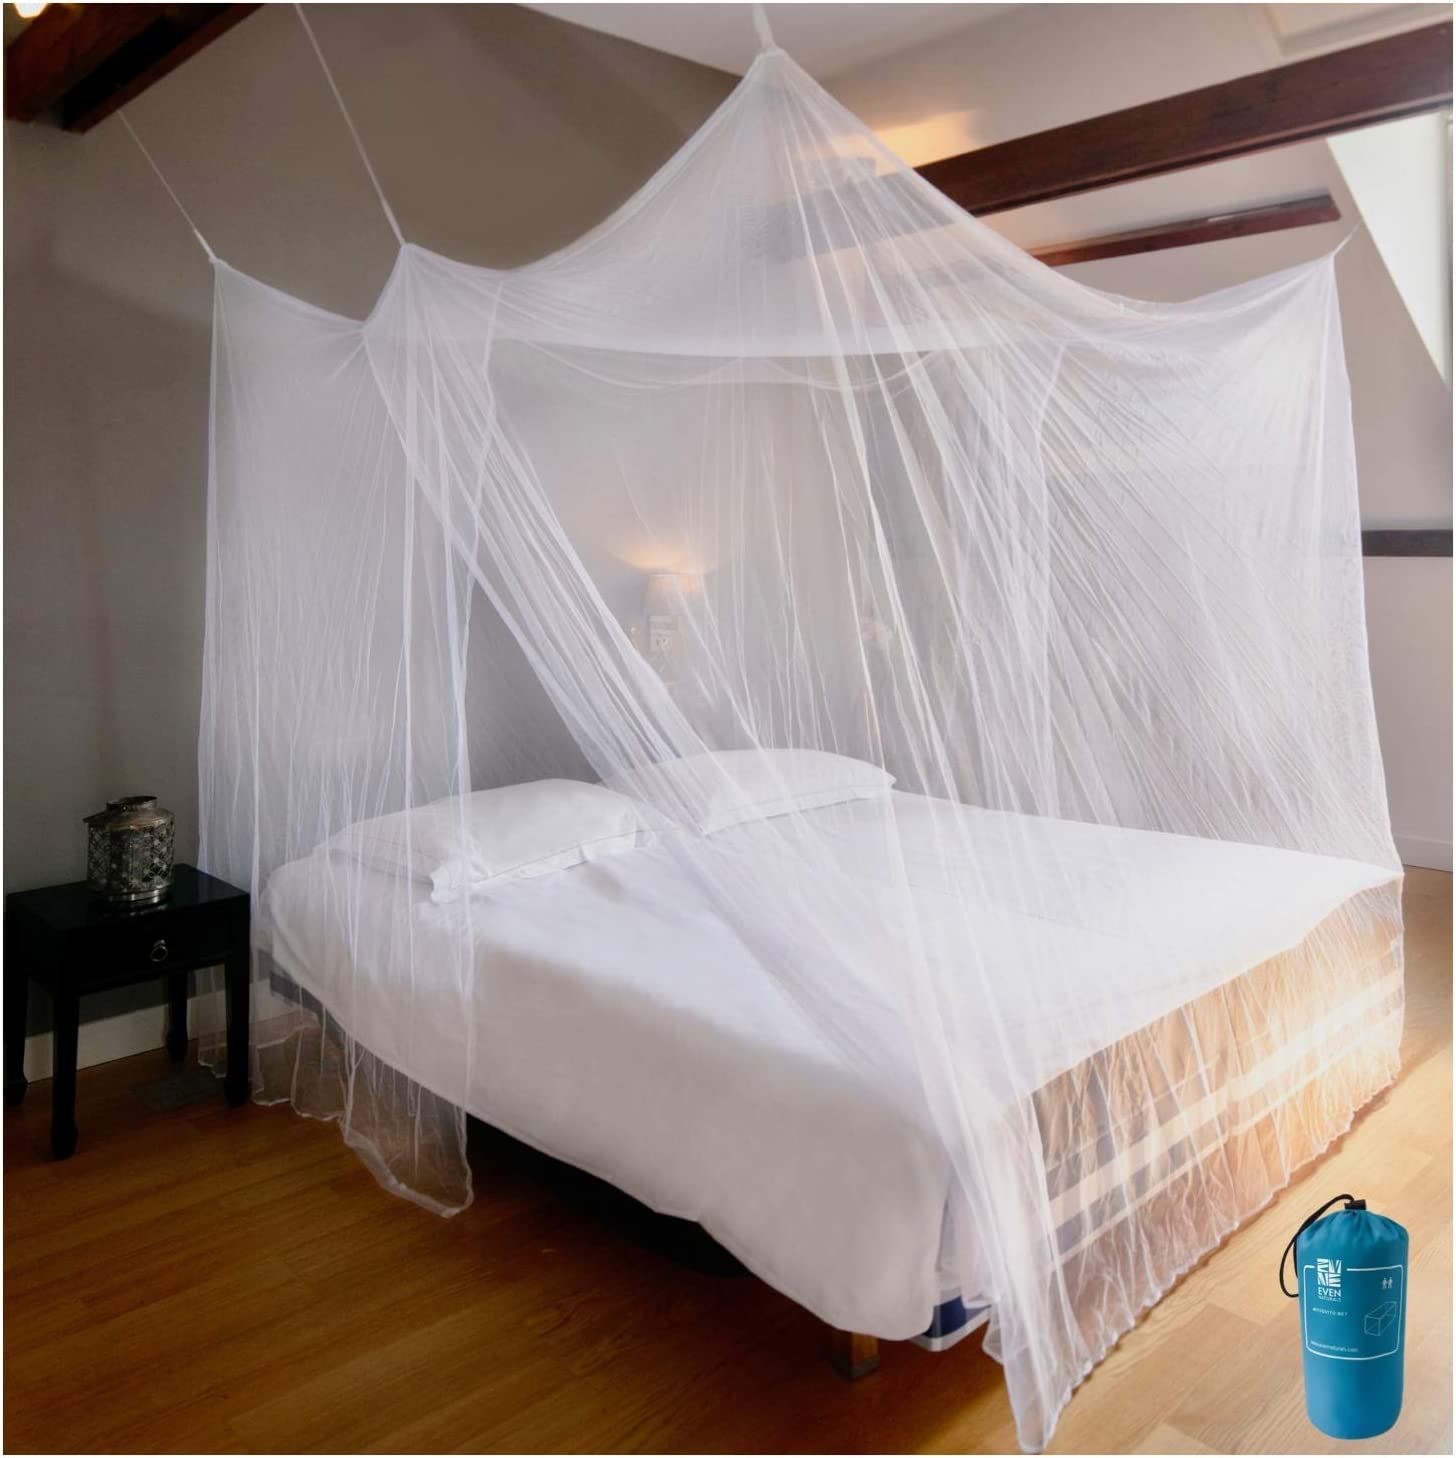 EVEN NATURALS Luxury Mosquito Net for Bed Canopy, XL Tent, Double to King, Camping Screen House, Finest Holes Mesh 300, Square Netting Curtain, 2 Entries, Easy to Install, Hanging Kit, Storage Bag…: Health & Personal Care